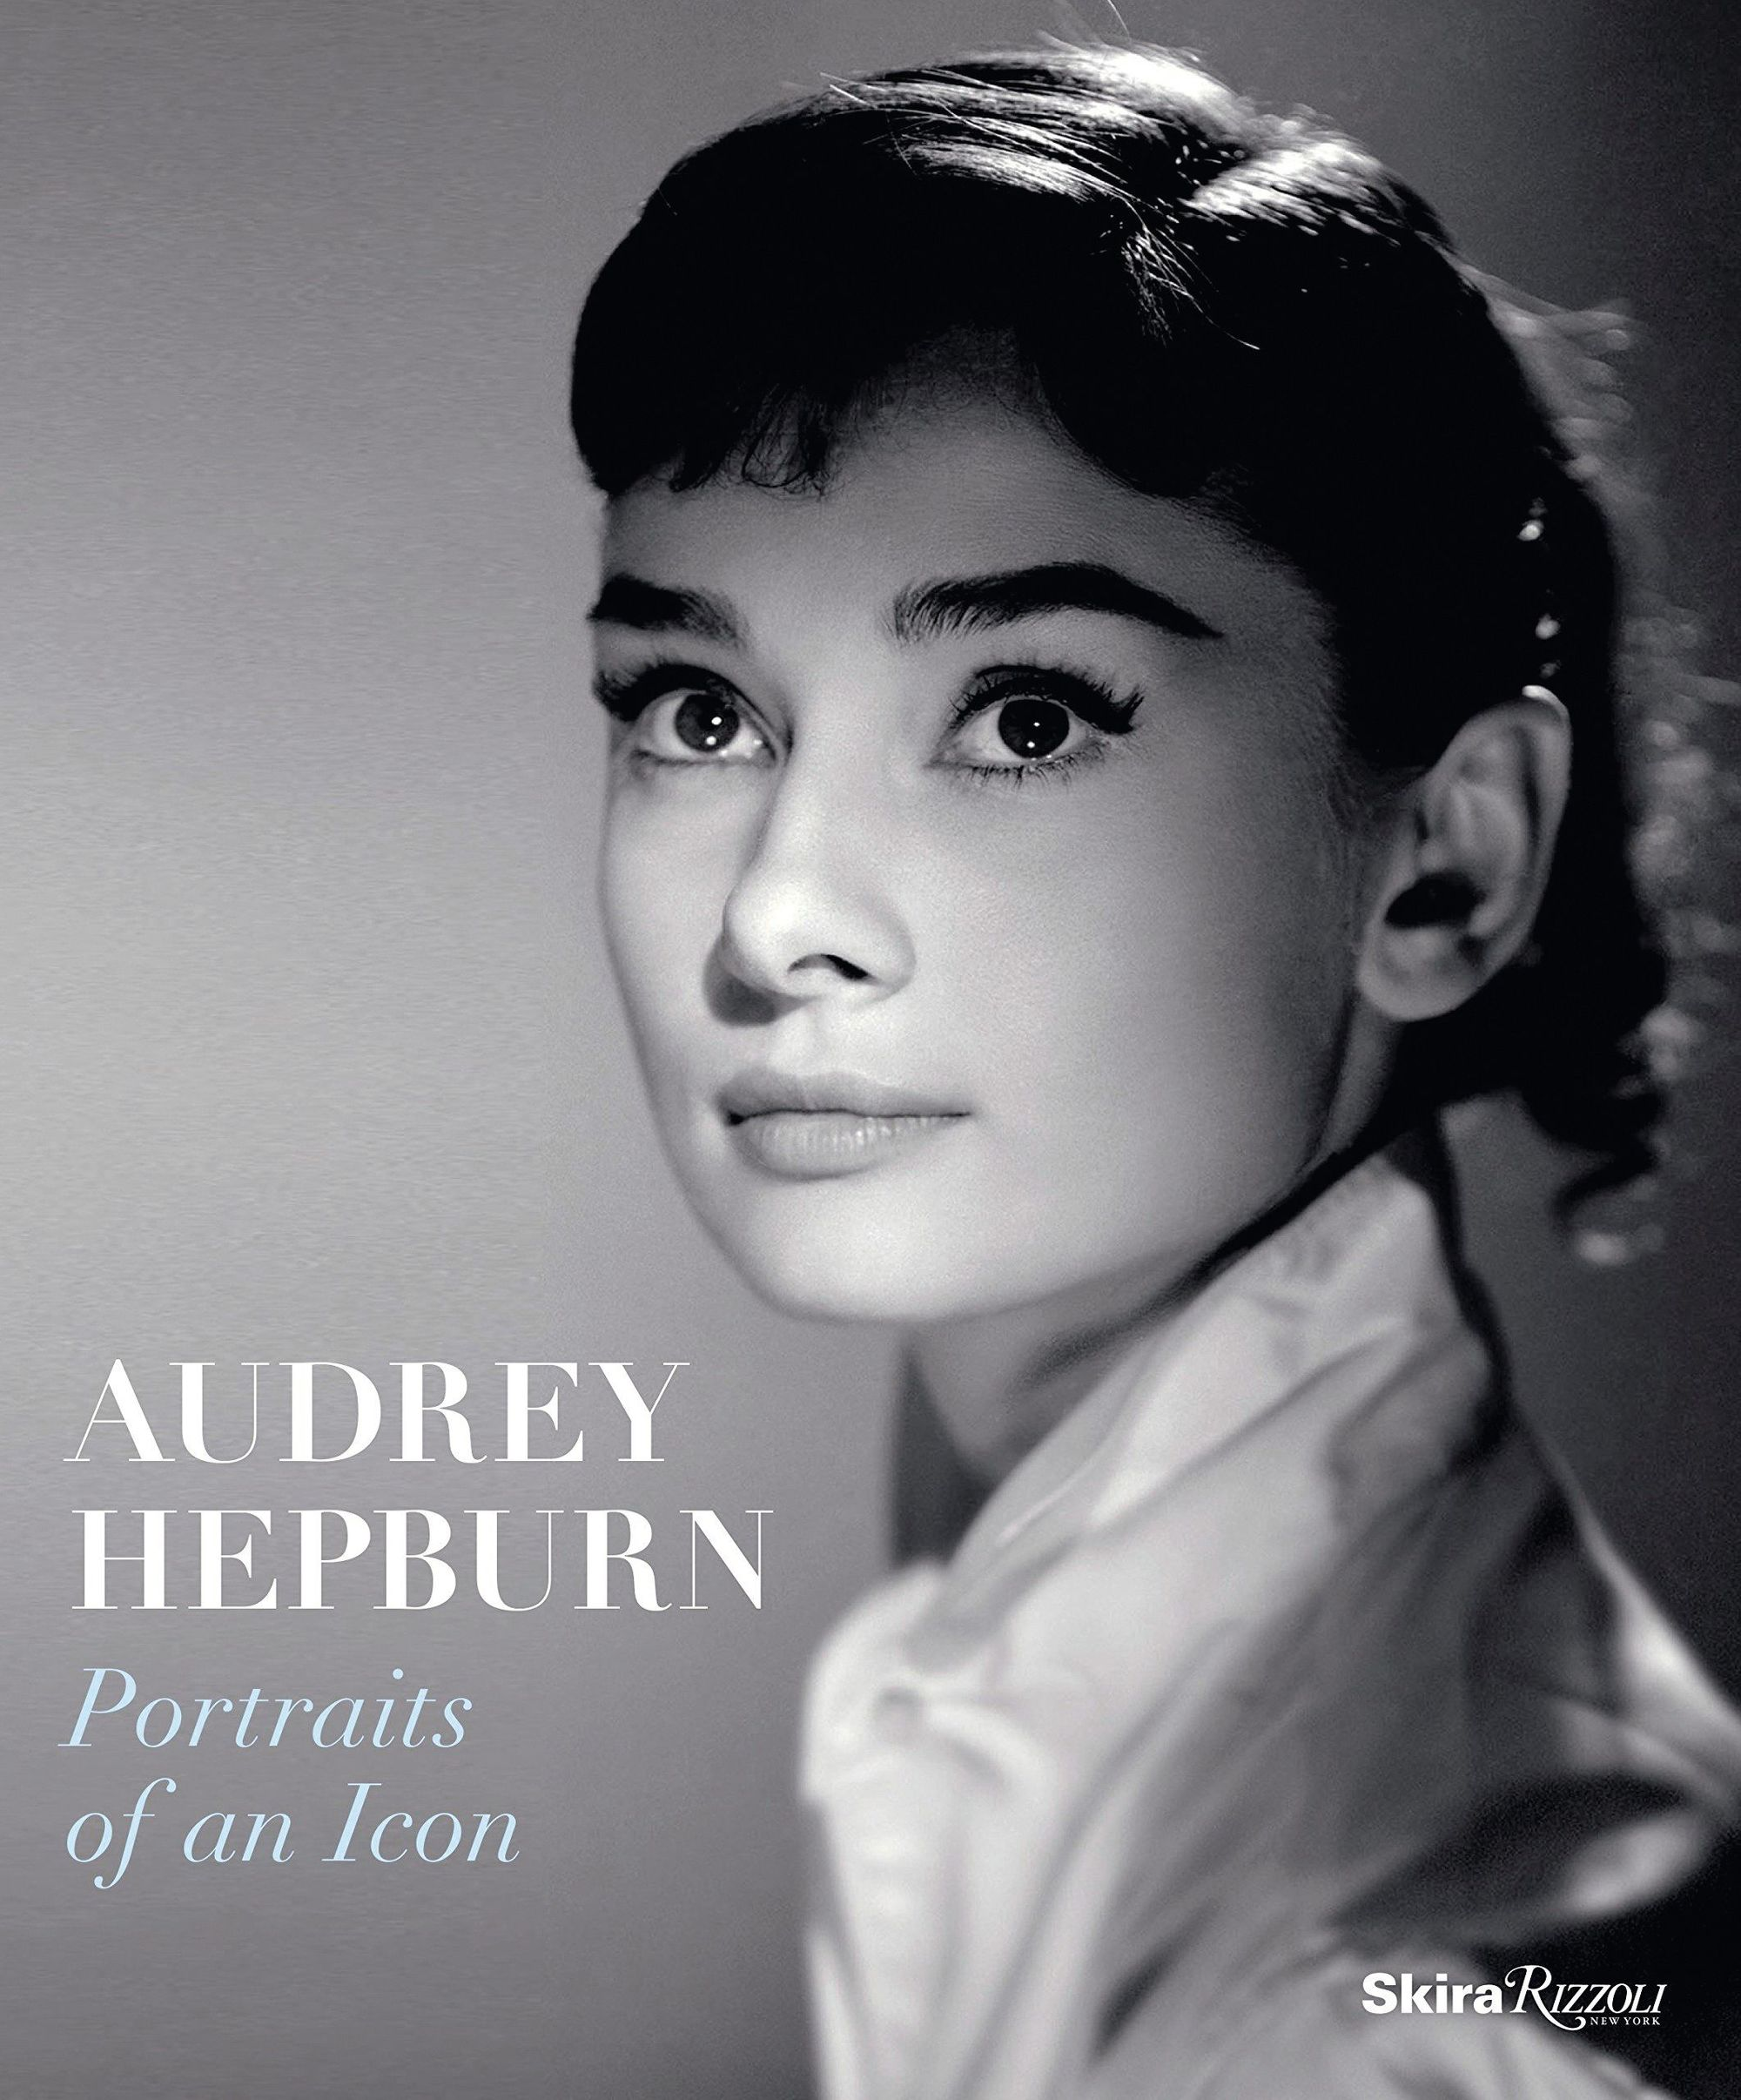 Audrey Hepburn: Portraits of an Icon, Terence Pepper and Helen Trompeteler, 2015